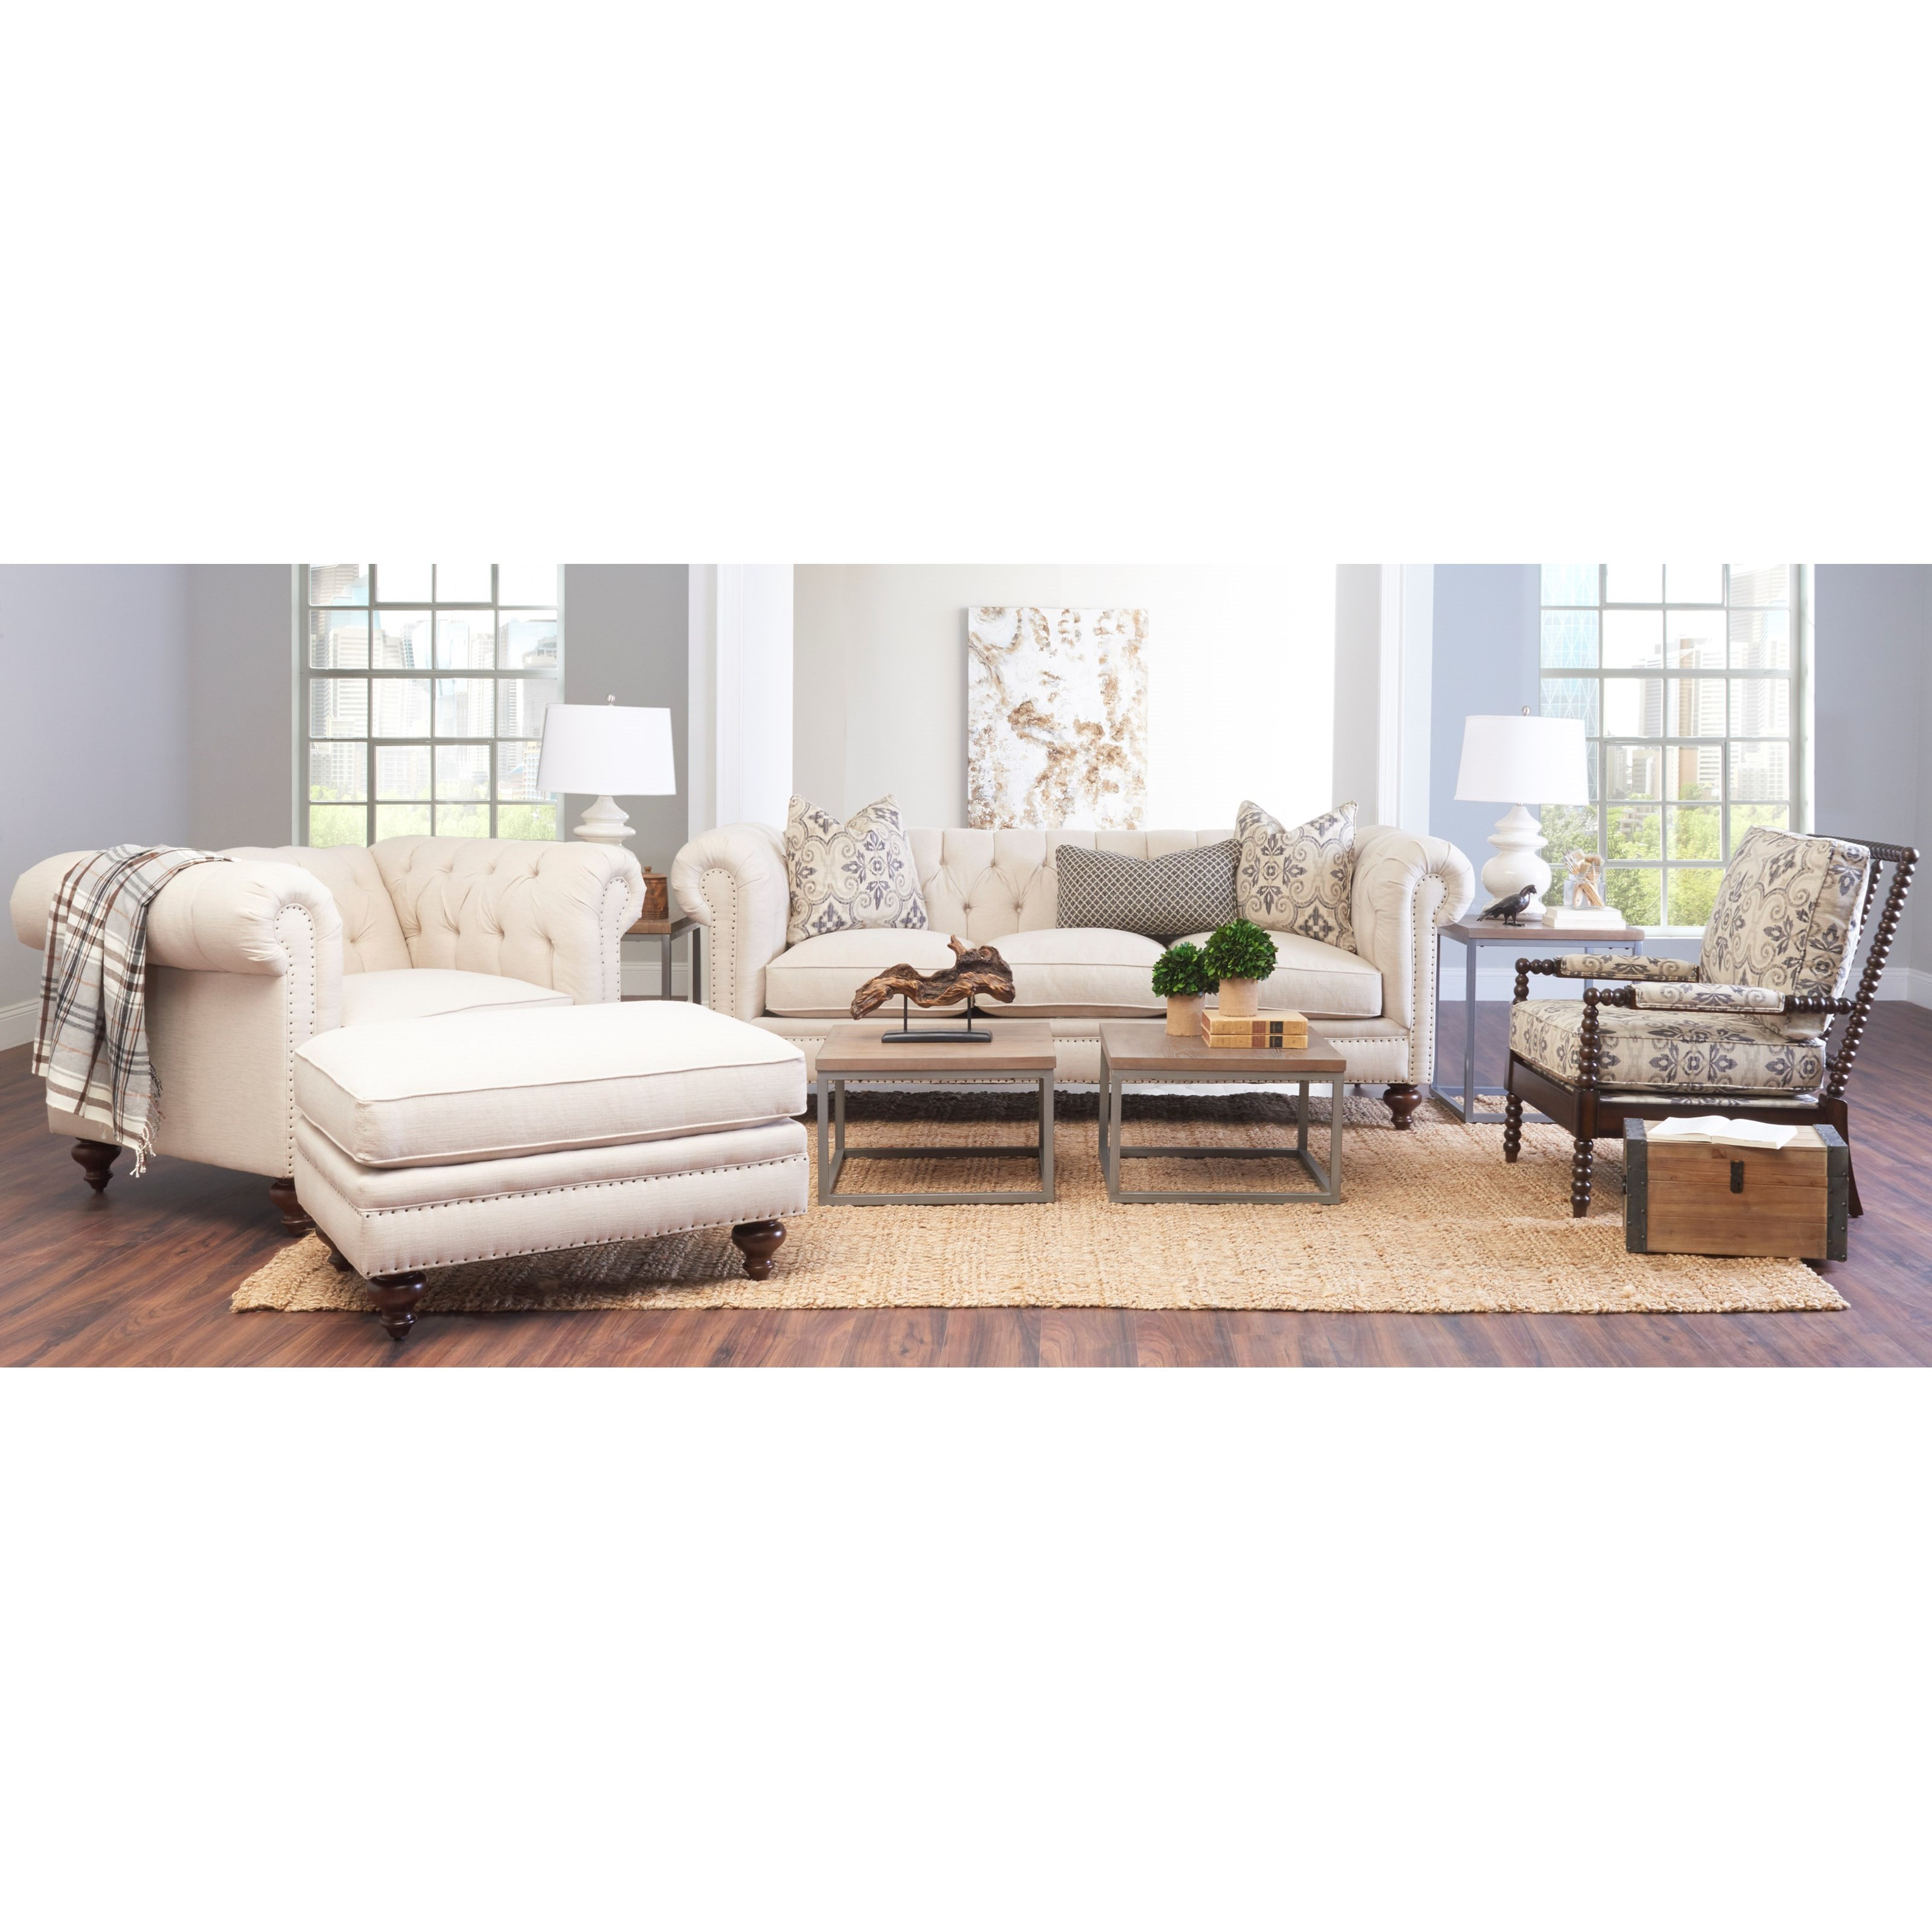 Klaussner Charlotte Ottoman With Nails Sheely S